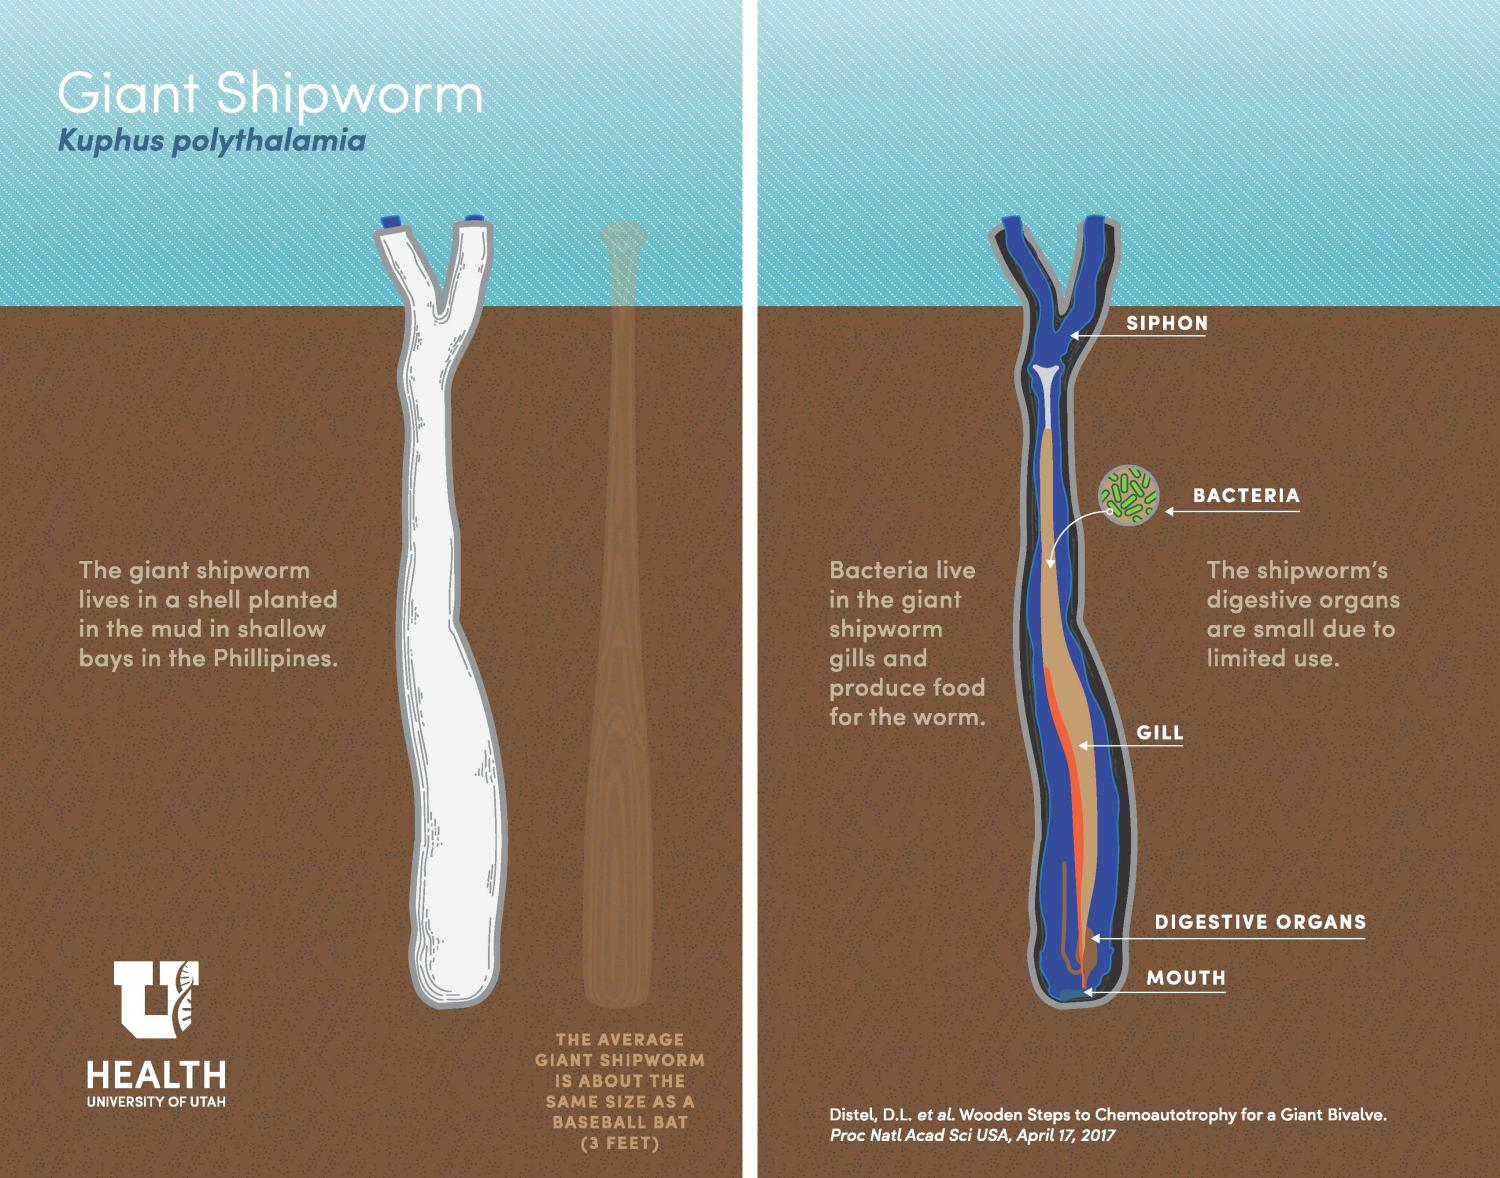 First live specimens of alien-like giant shipworm found in Phillipines